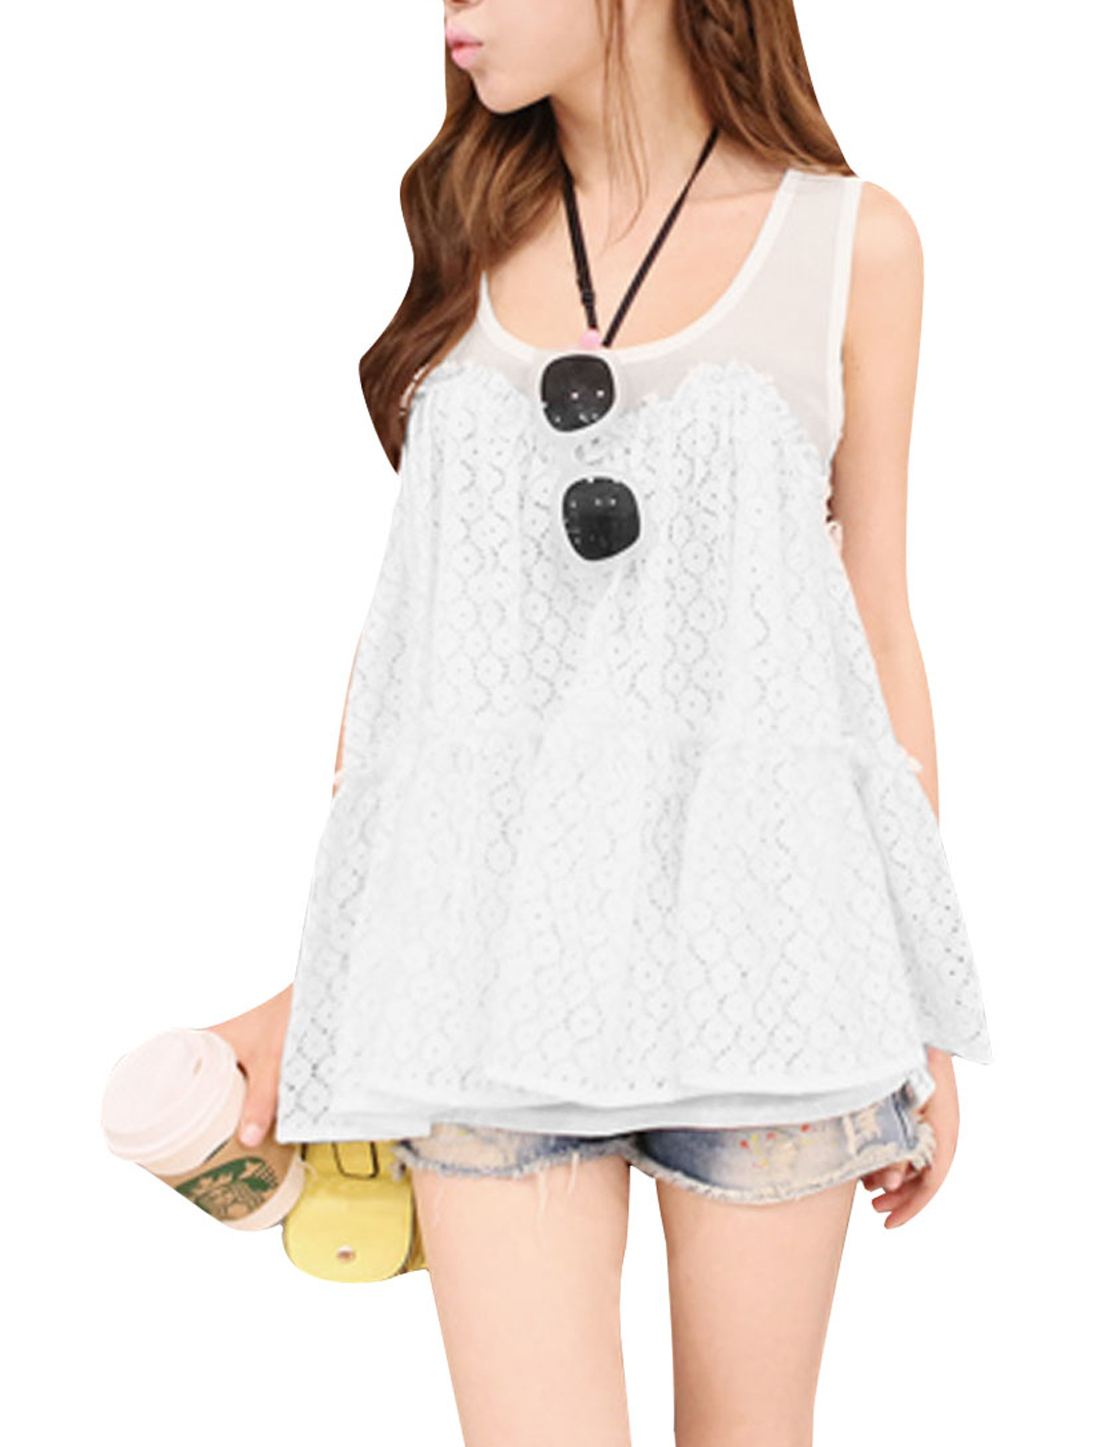 Lady White Sleeveless Flower Design Pullover Lace Tank Top S